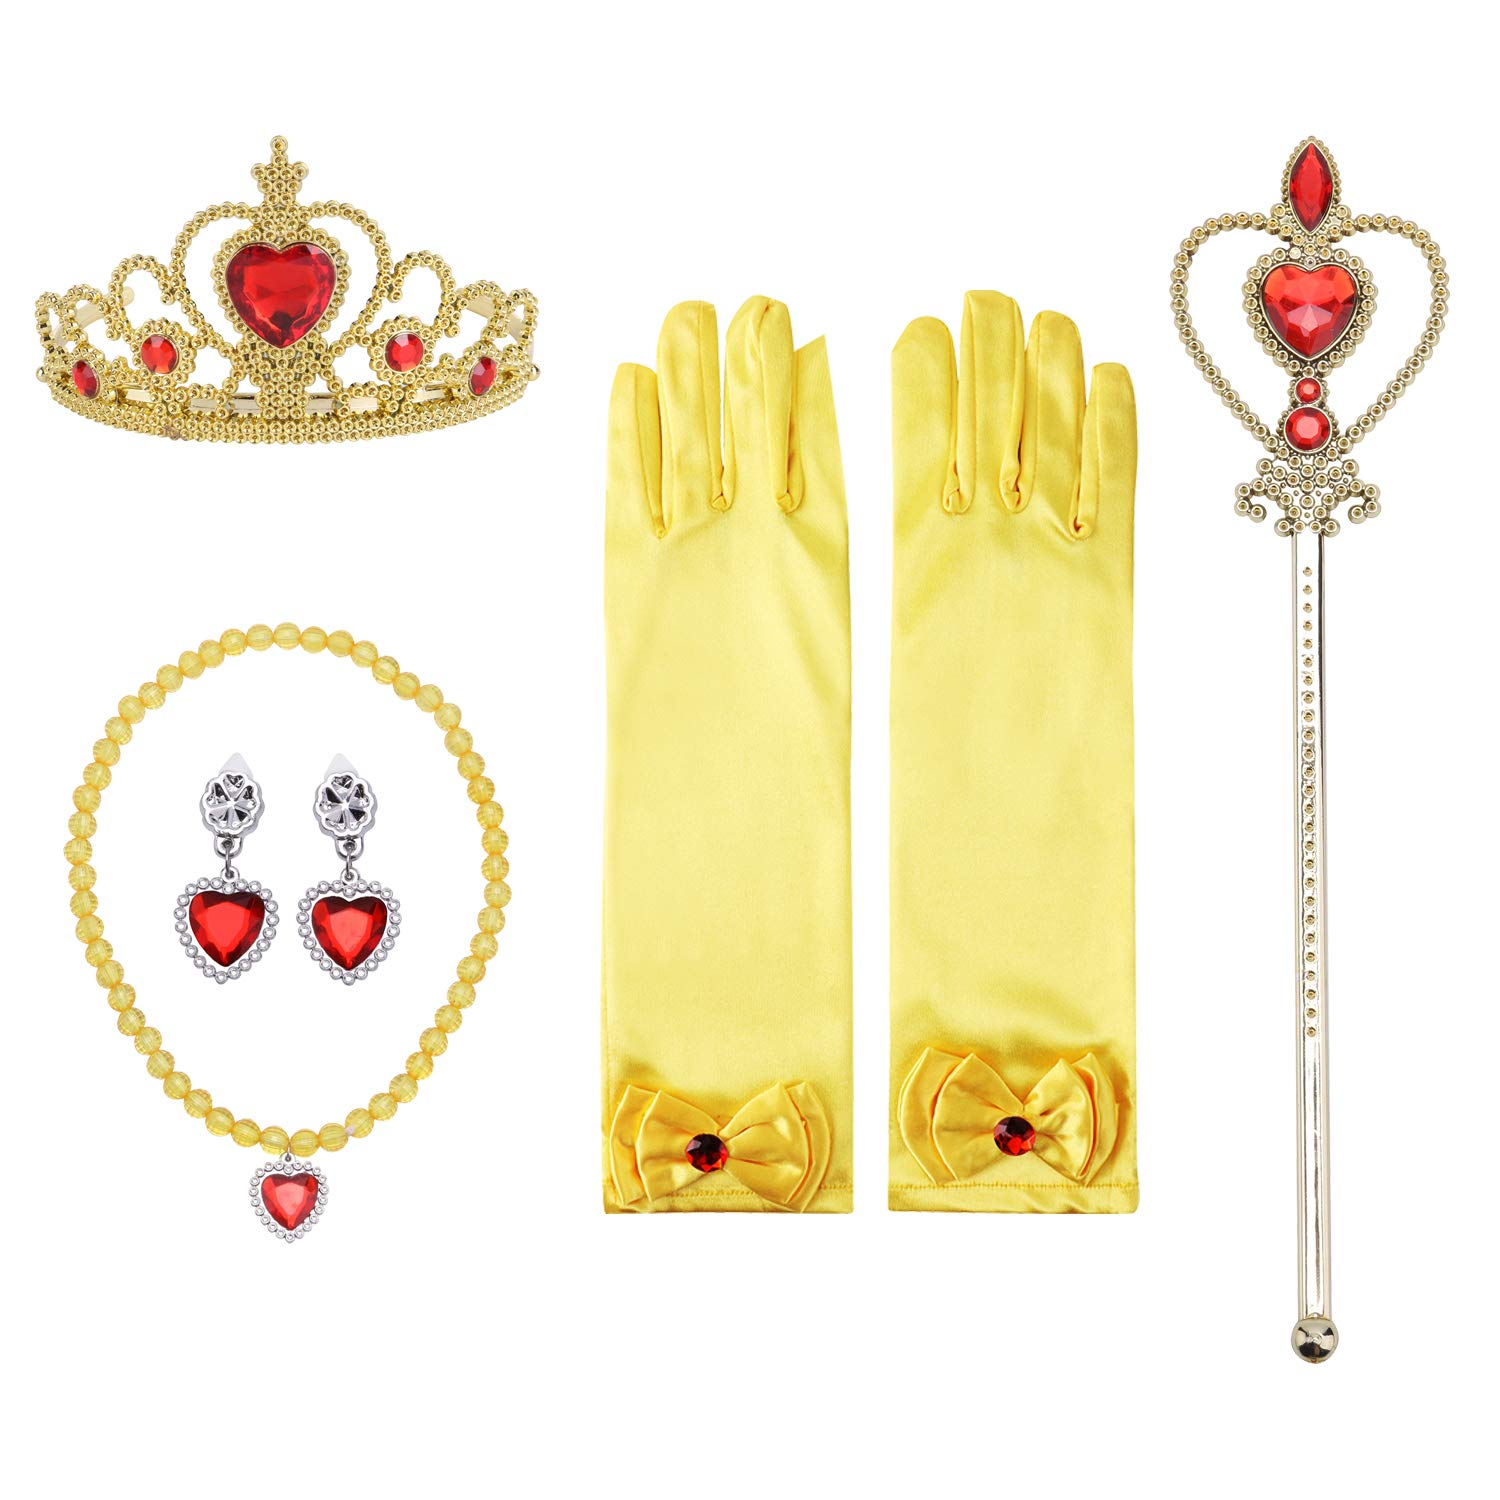 Girls Princess Dress up Accessories Set- Gloves,Tiara Crown, Earrings,Wand and Necklaces,Yellow, 5 Pieces.